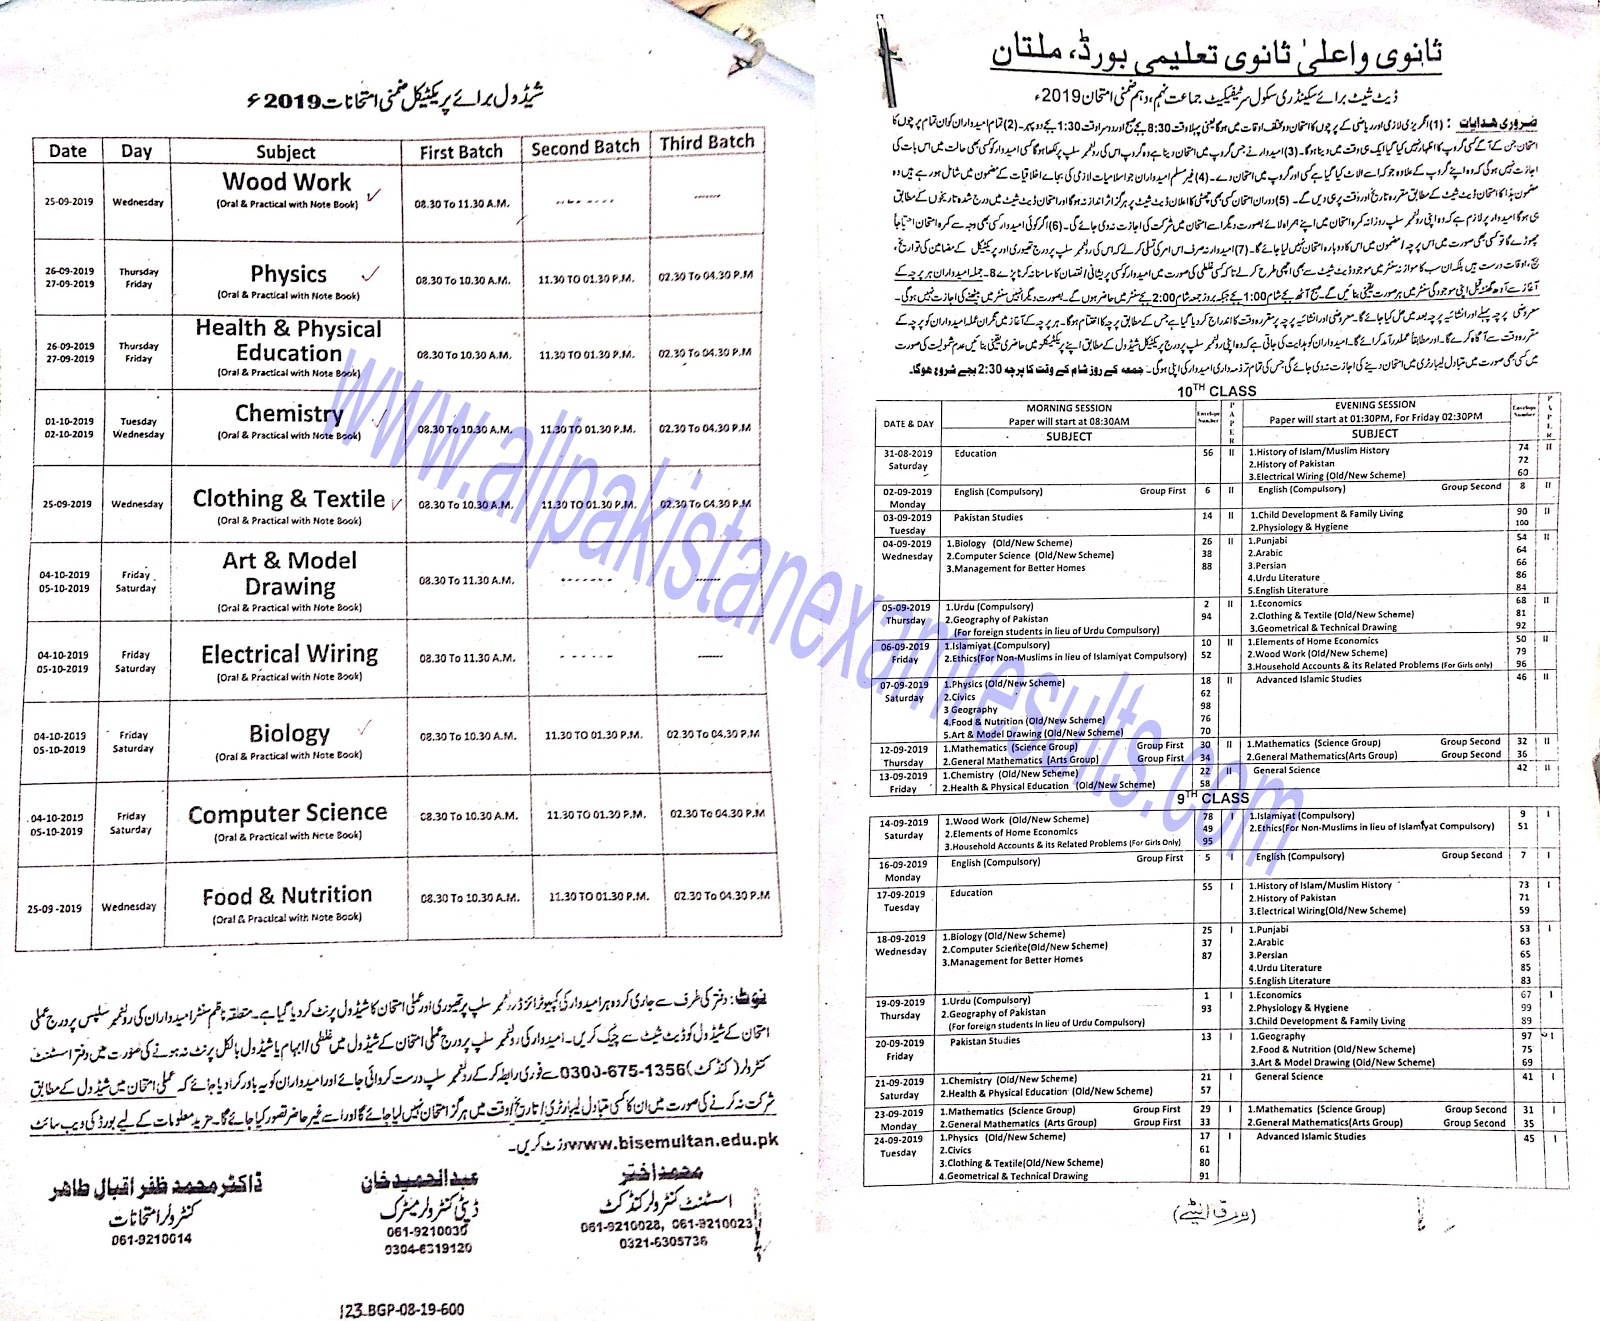 Date Sheet For SSC Supplementary Multan Board 2019